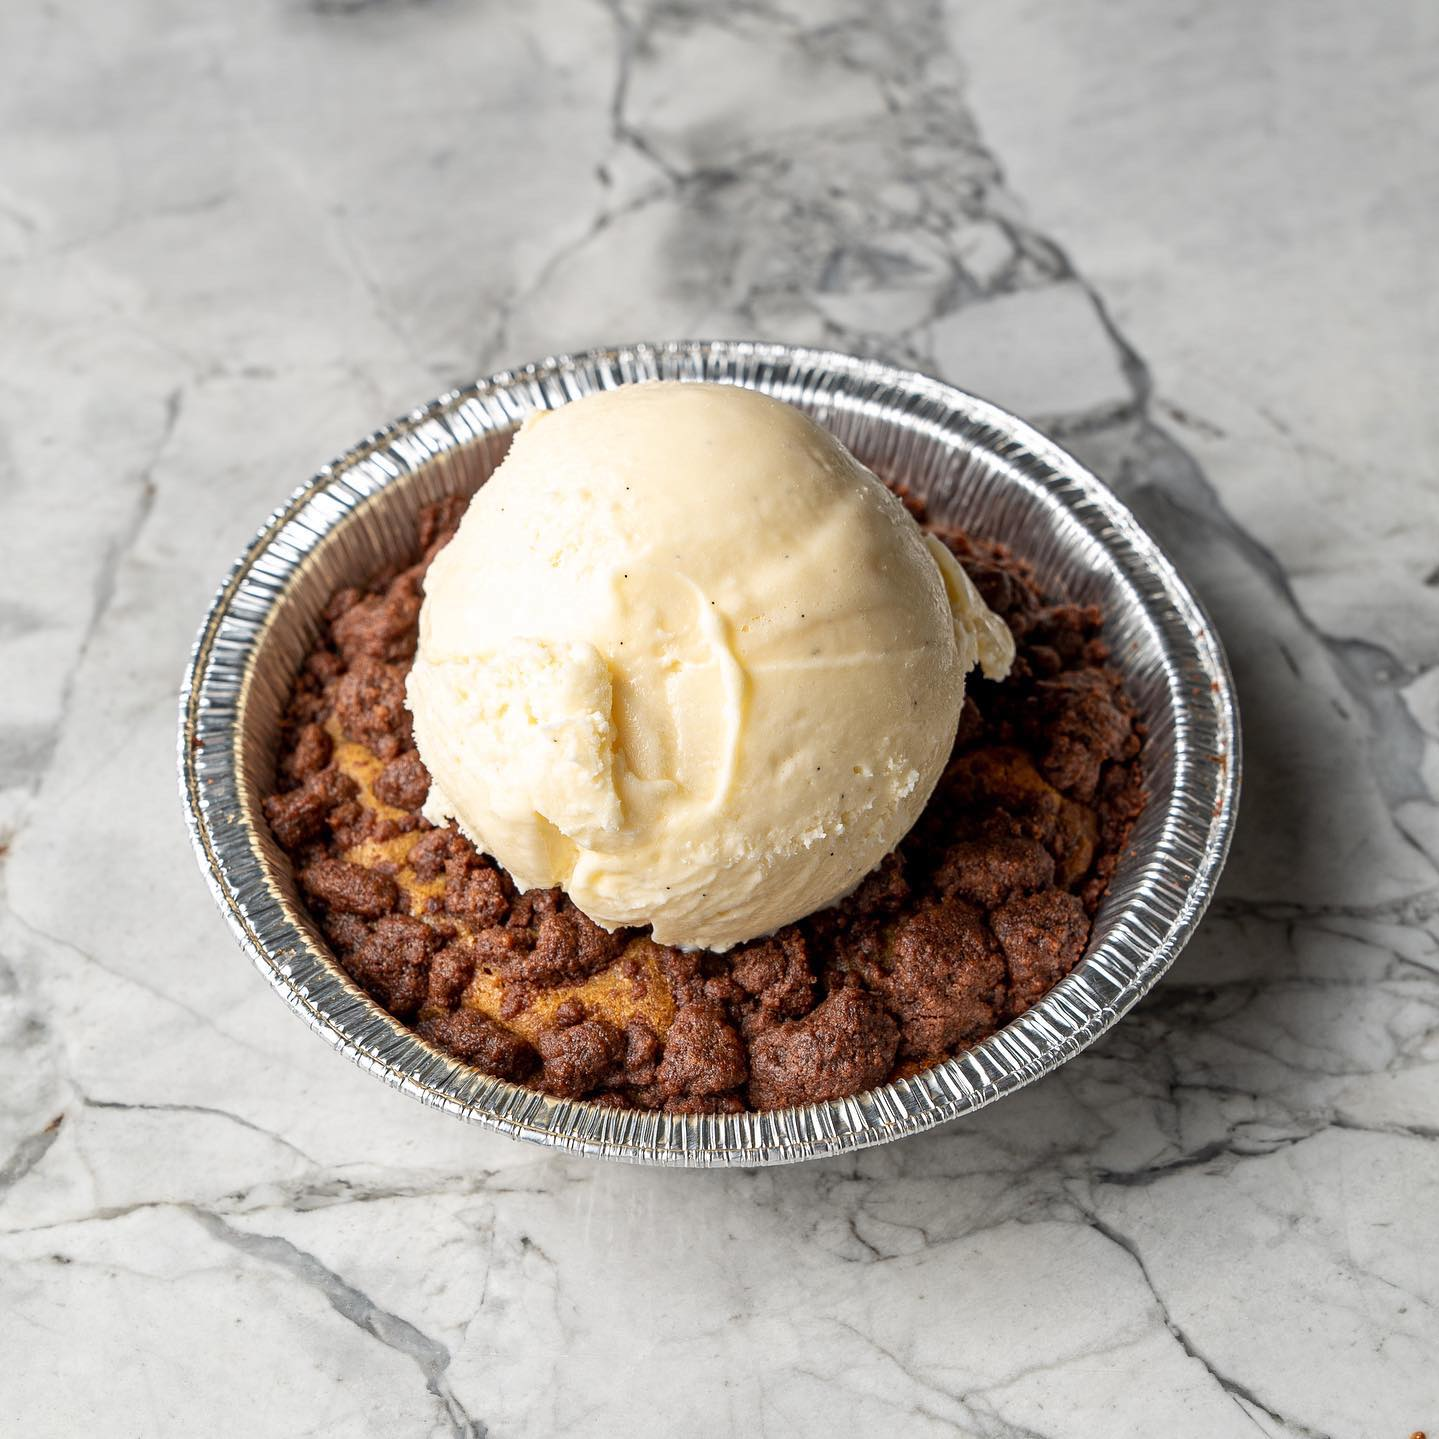 a single serve cookie pie with a scoop of gelato on top